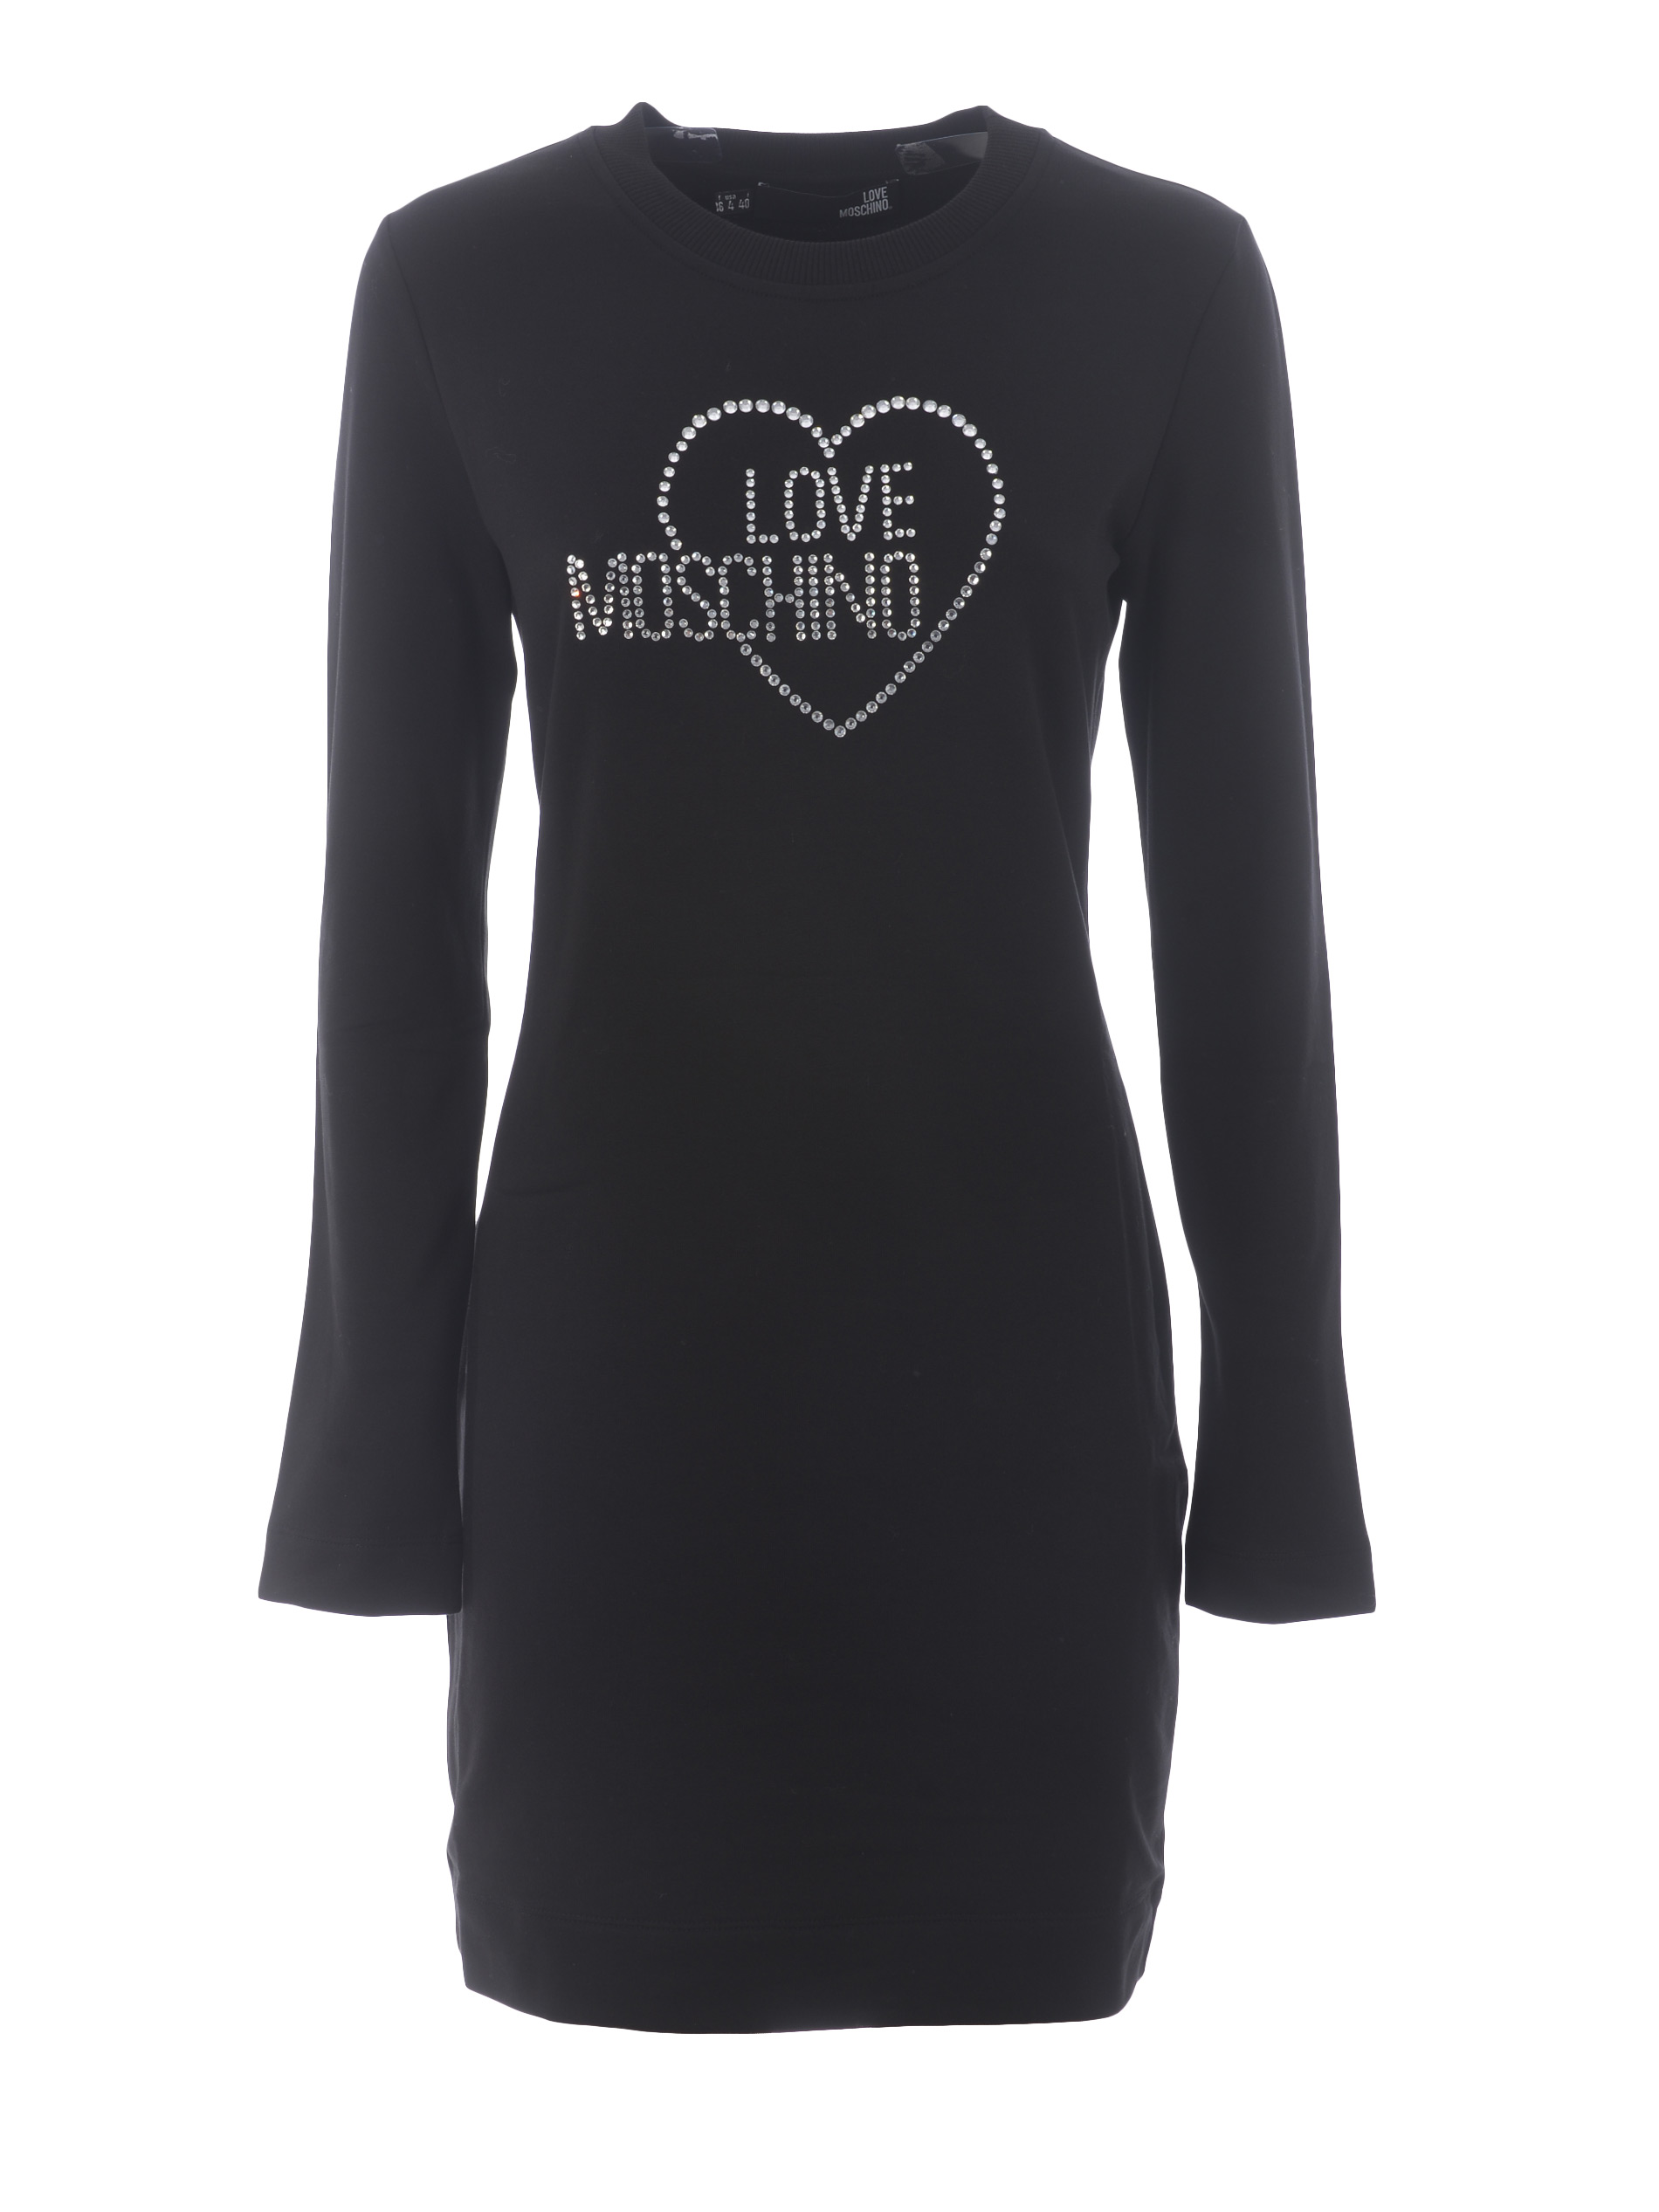 Love moschino dress / sweatshirt in stretch cotton